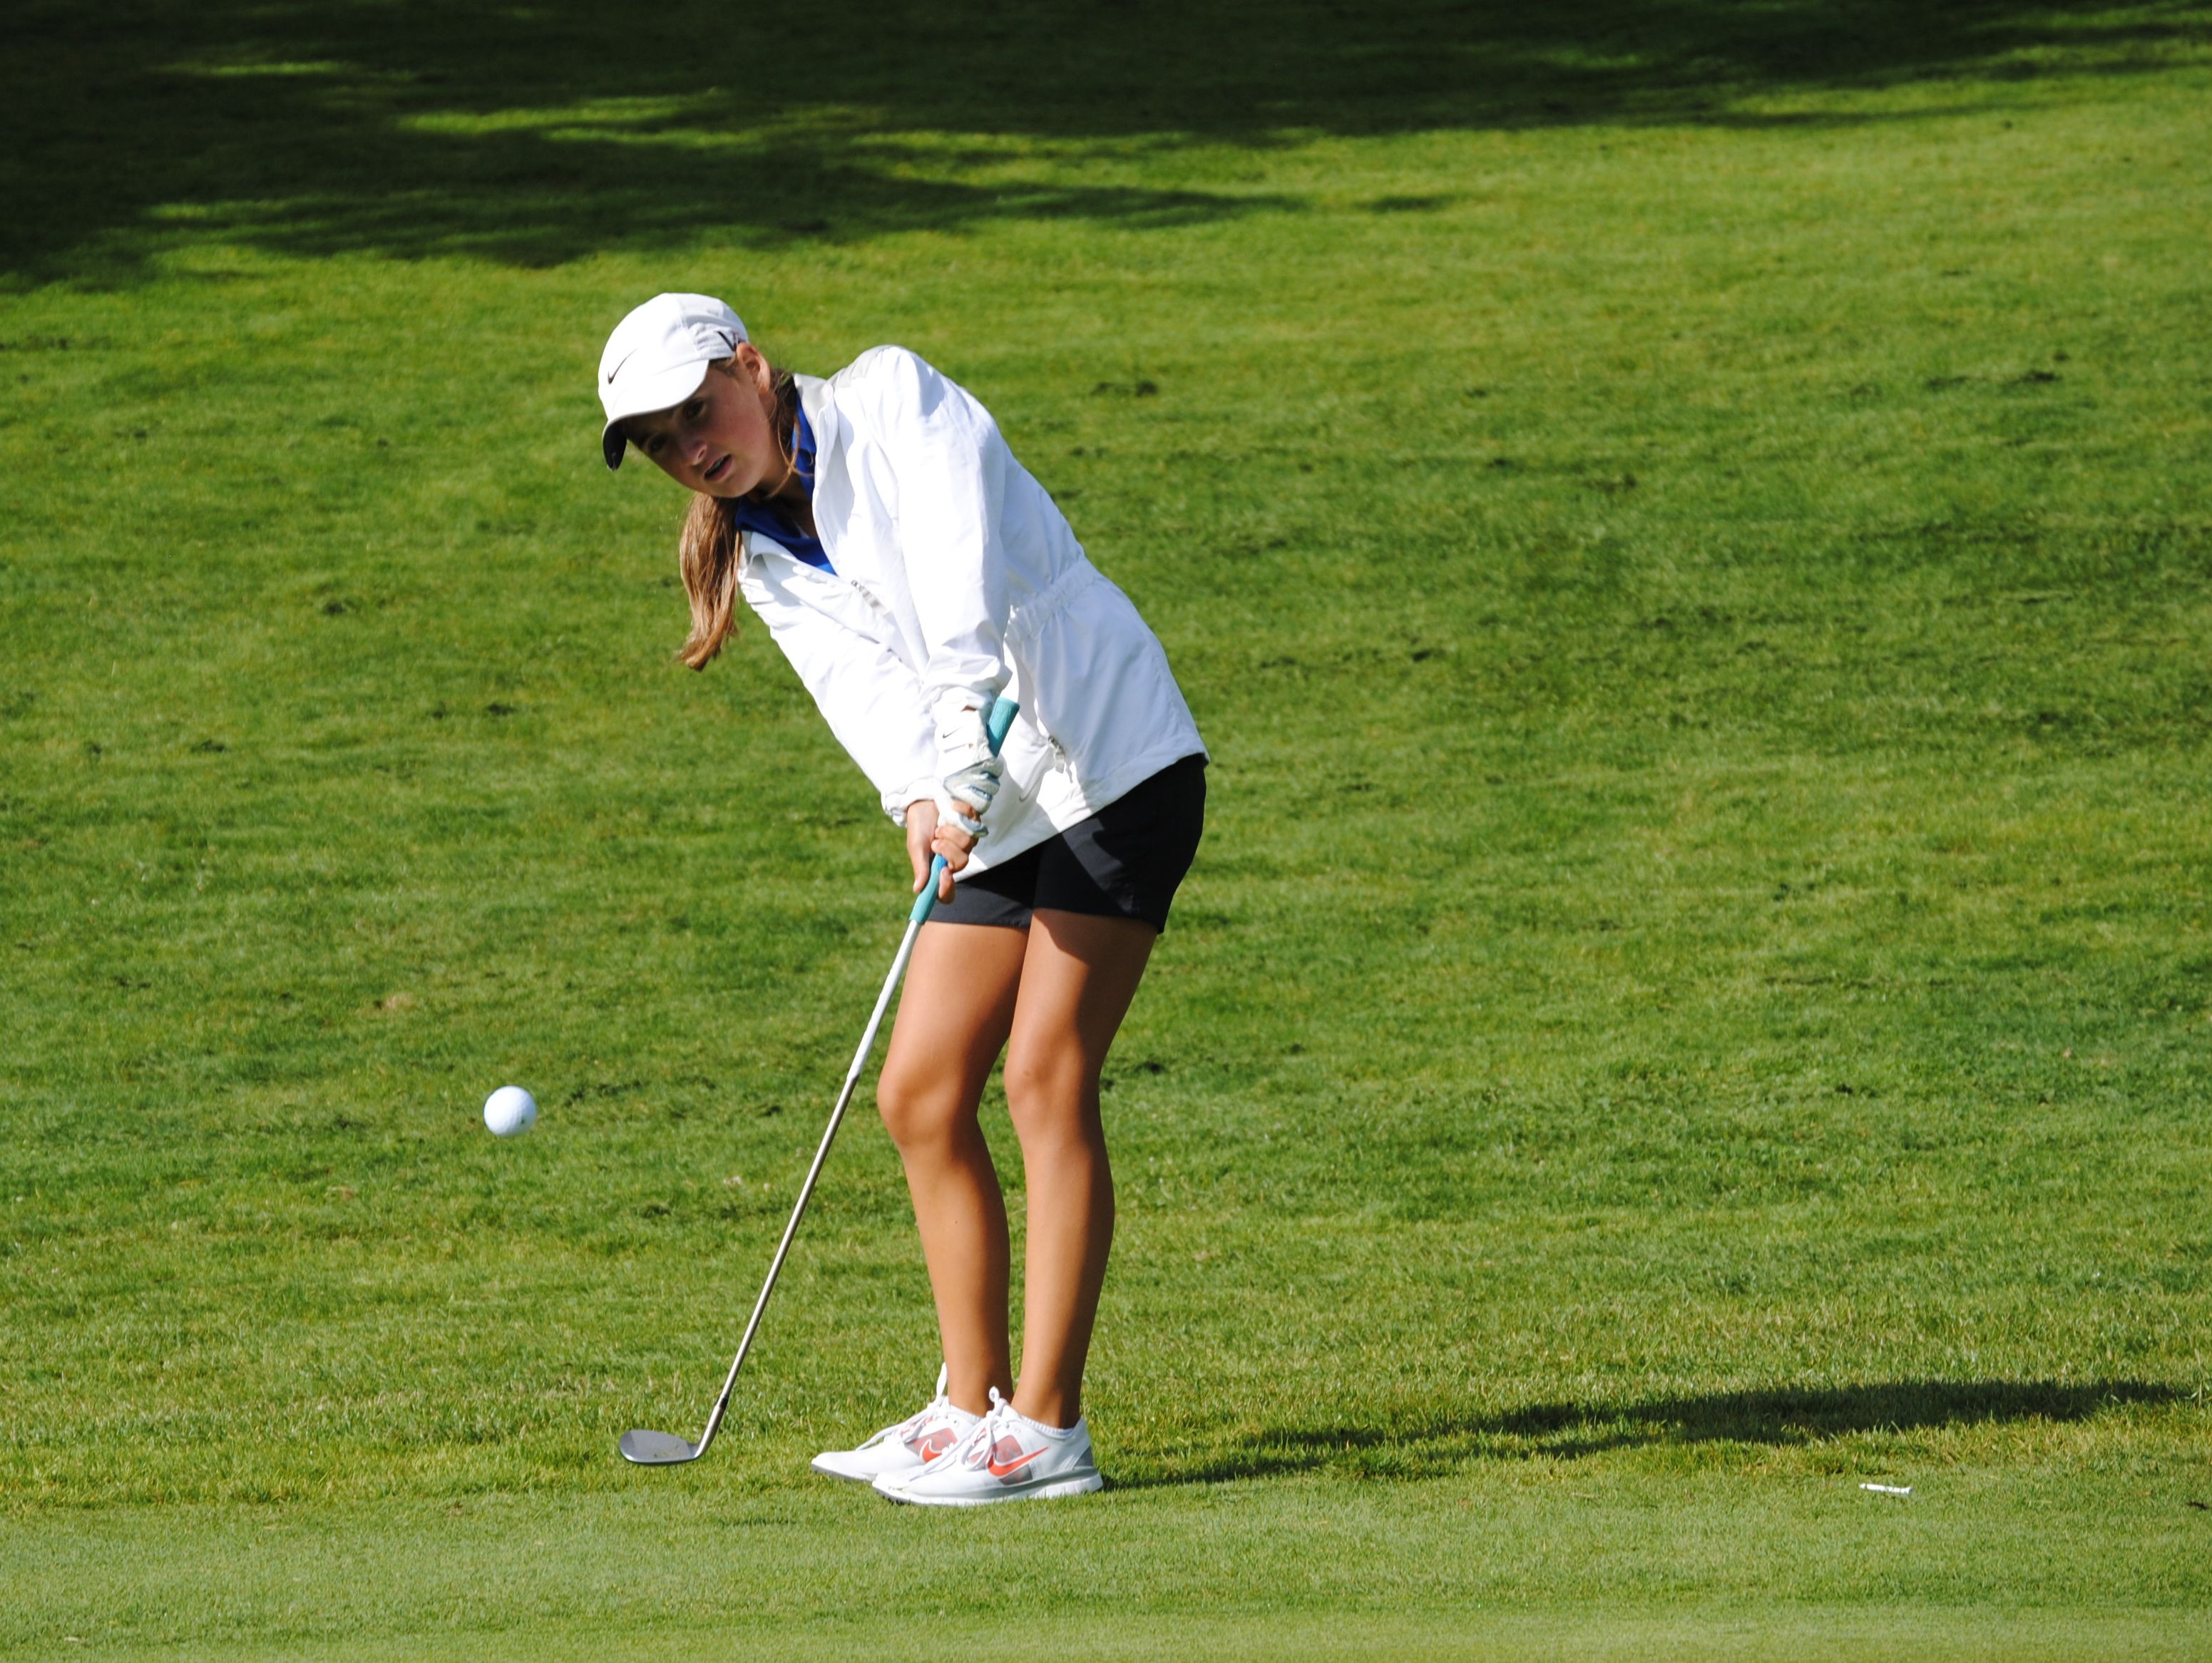 Independence High School sophomore golfer Sophia Trombetta